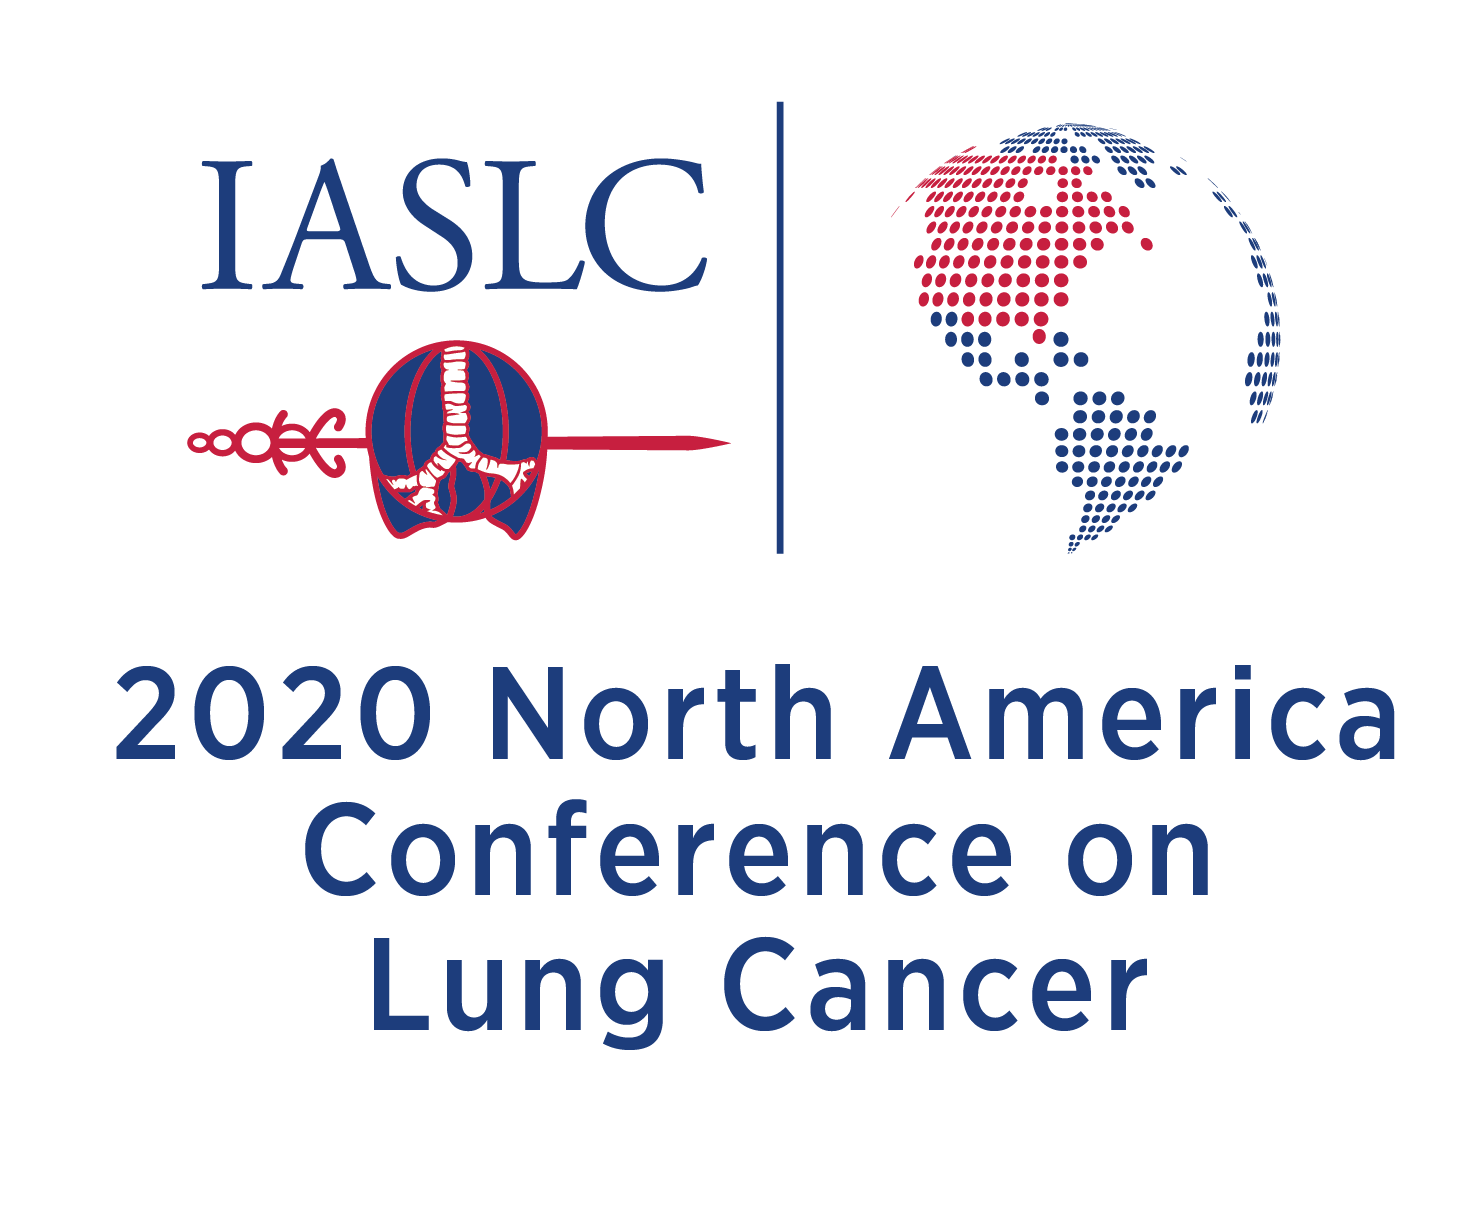 IASLC 2020 North America Conference on Lung Cancer